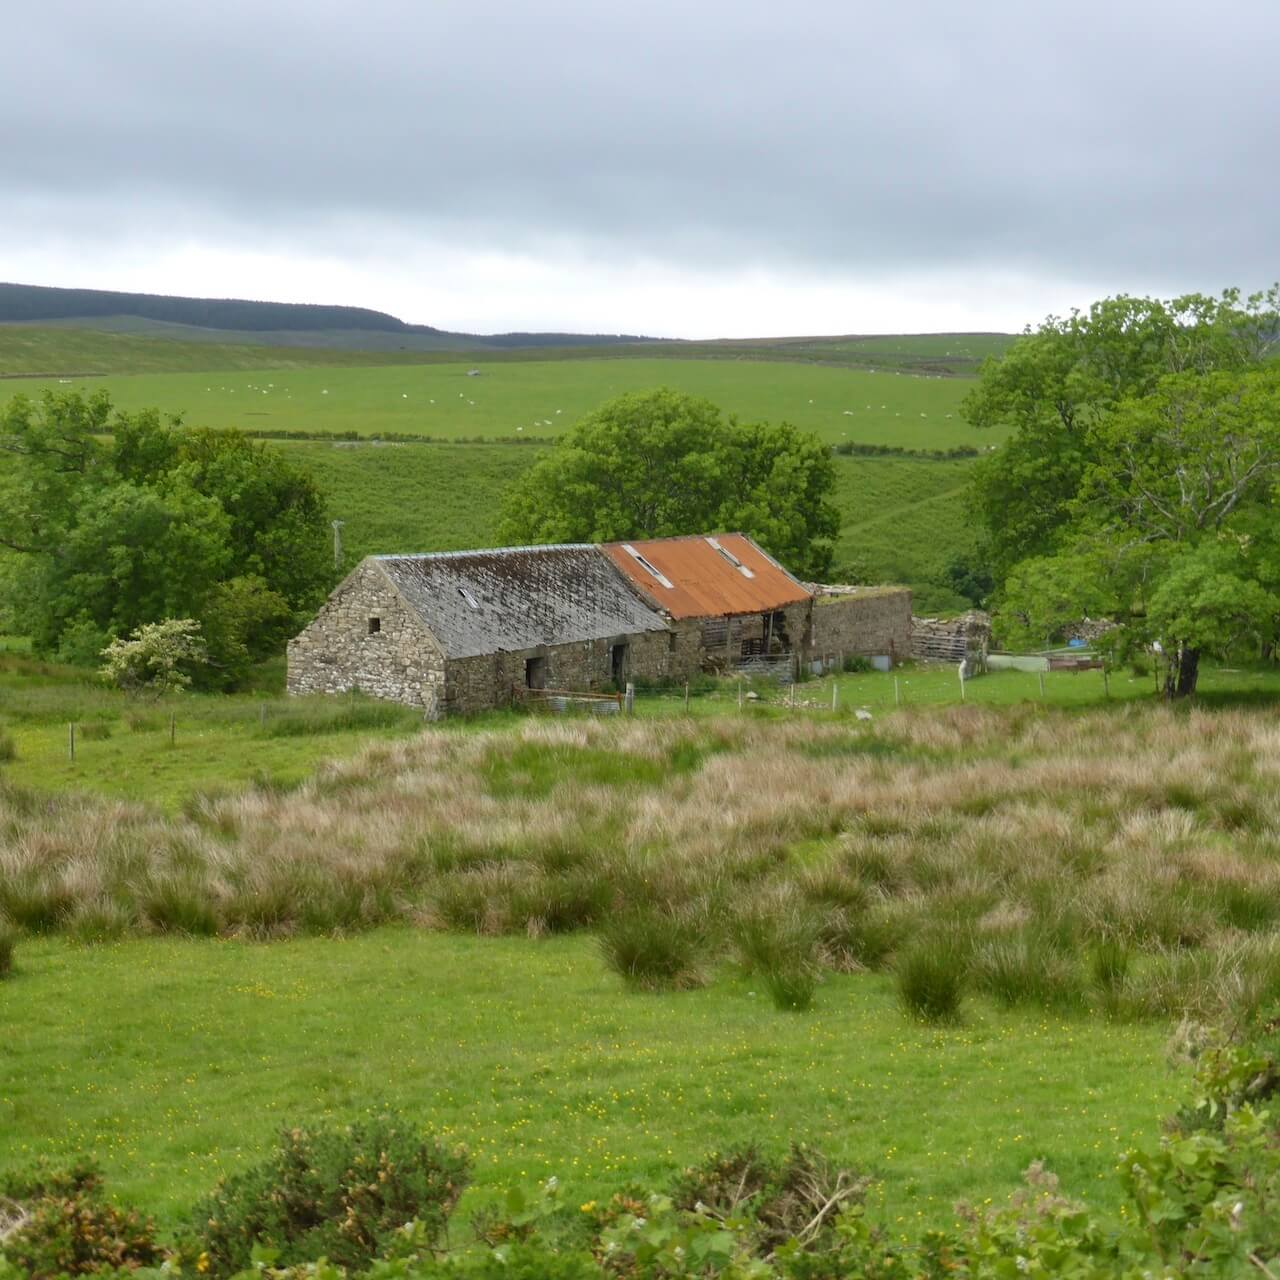 Farm along the Ross Road, Isle of Arran